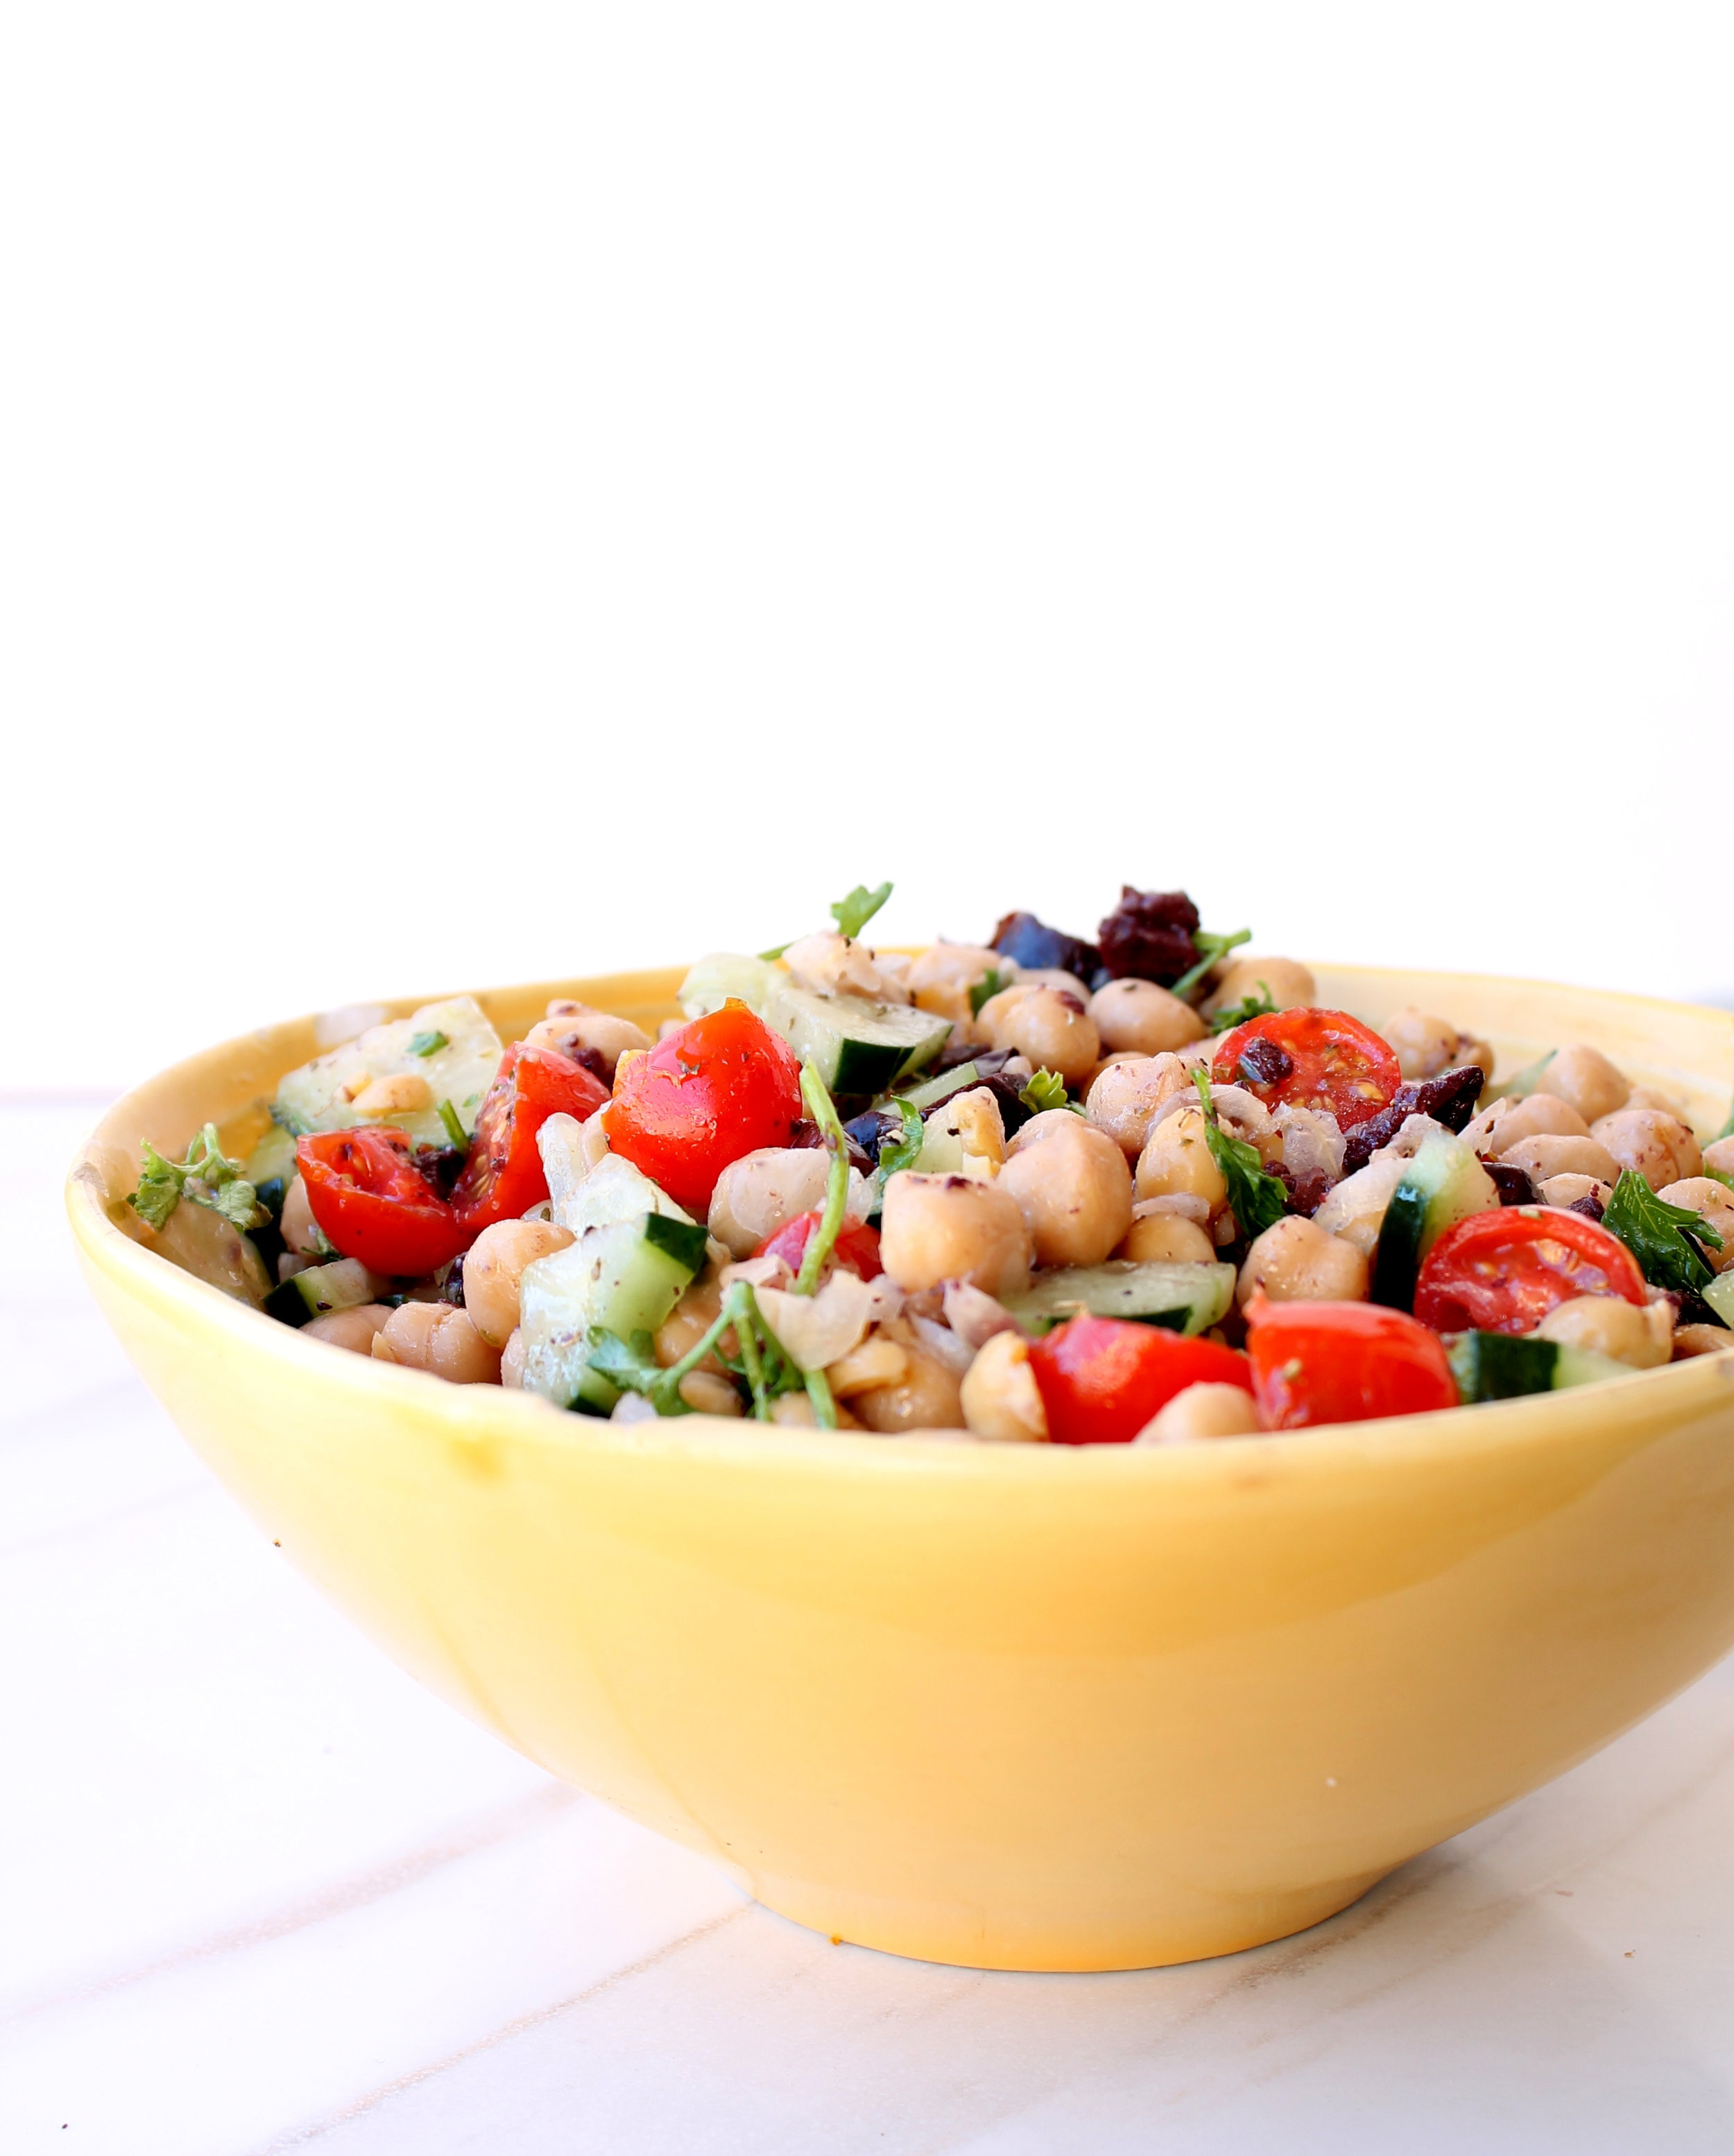 Lunchbox Chickpea Salad is naturally gluten-free, vegan, and very flexible. It requires a bowl, 10 minutes, and you will have lunch for days!